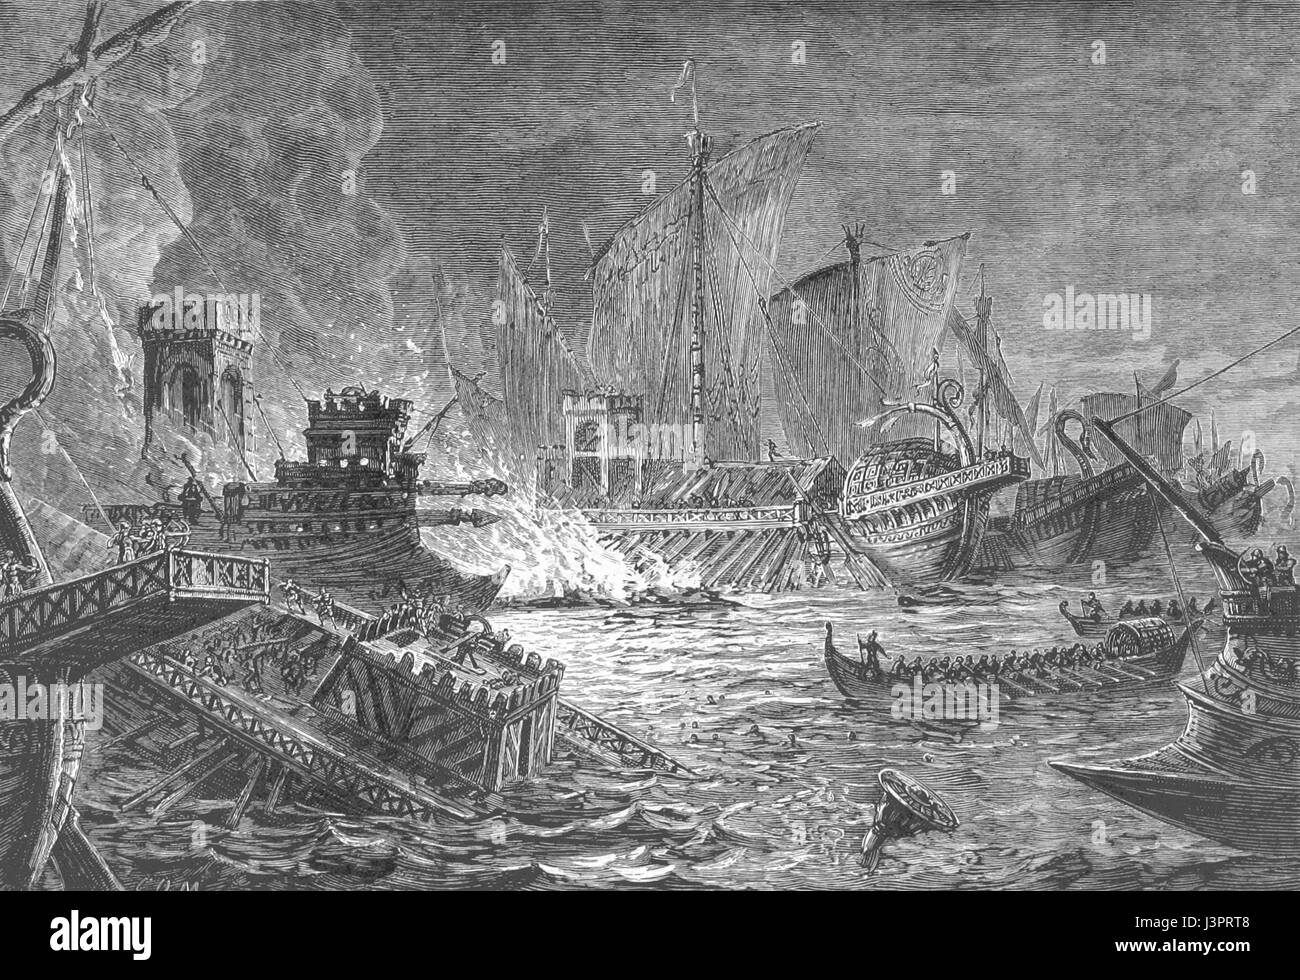 The Battle of Actium was the decisive confrontation of the Final War of the Roman Republic, a naval engagement between - Stock Image